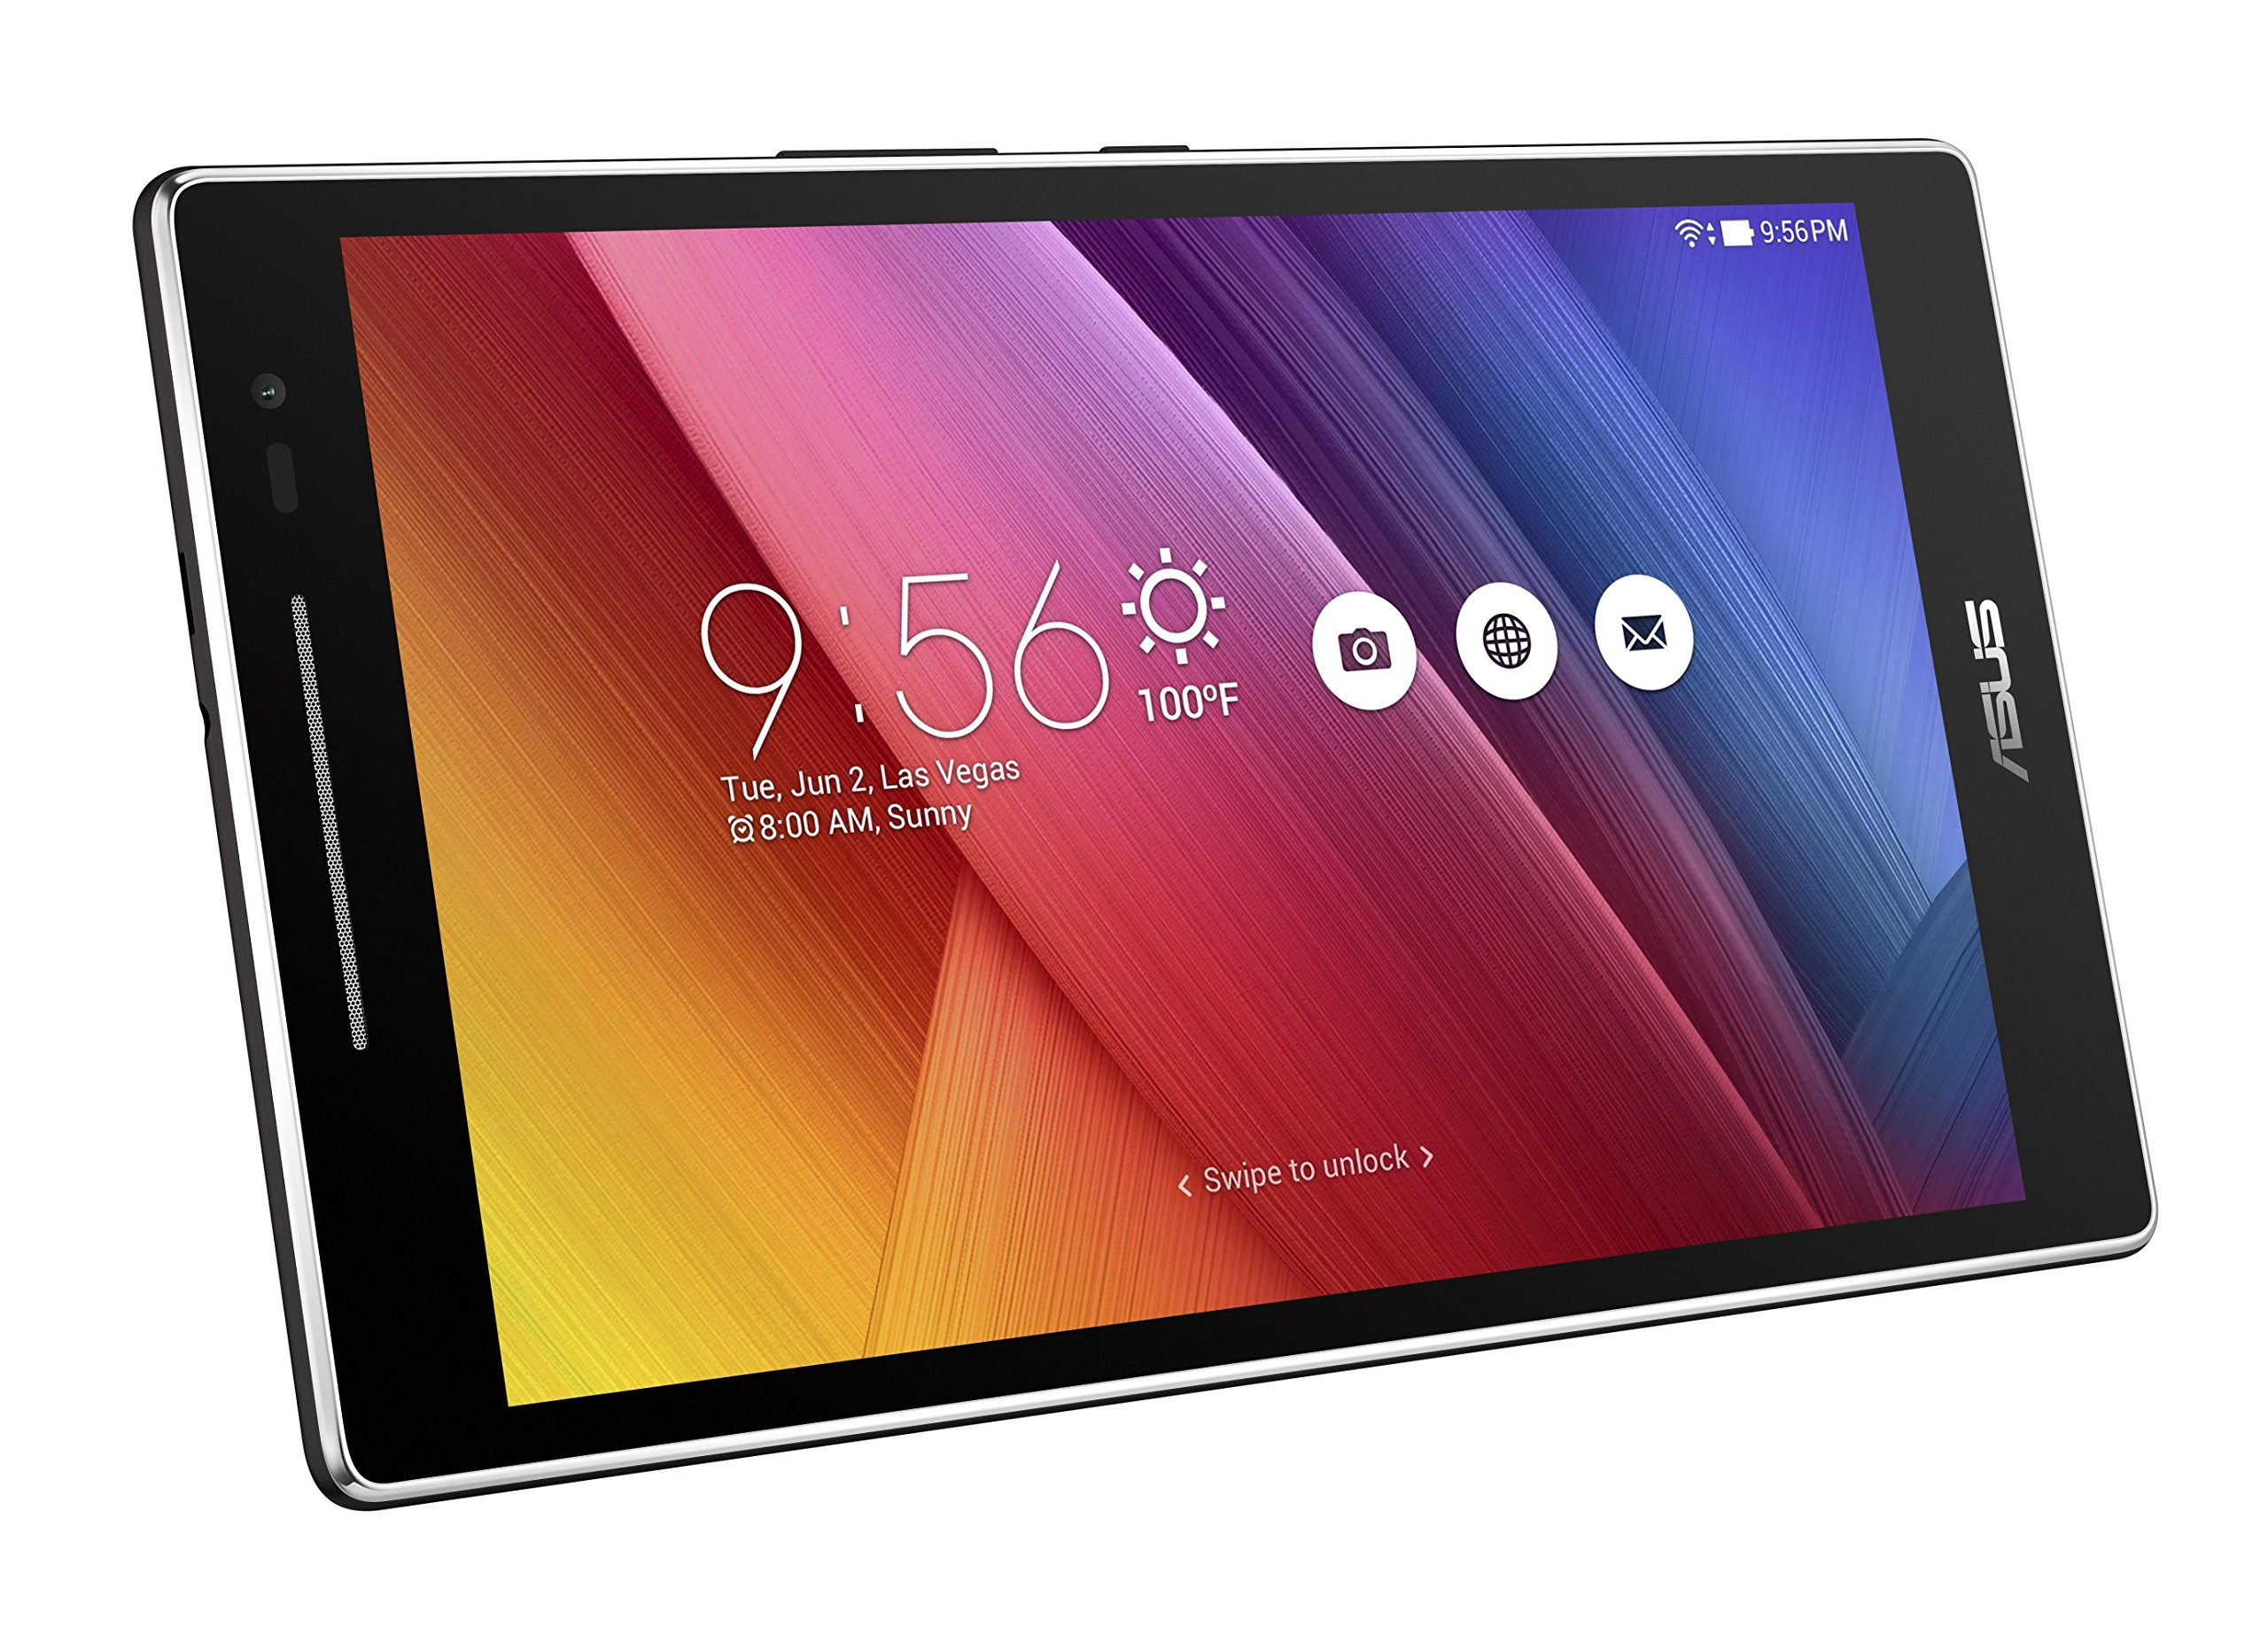 ASUS ZenPad 8 Dark Gray 8-inch Android Tablet [Z380M] 2MP Front / 5MP Rear PixelMaster Camera, WXGA TouchScreen, 16GB Onboard Storage, Quad-Core 1.3GHz Processor, 802.11a/b/g/n WiFi by Asus